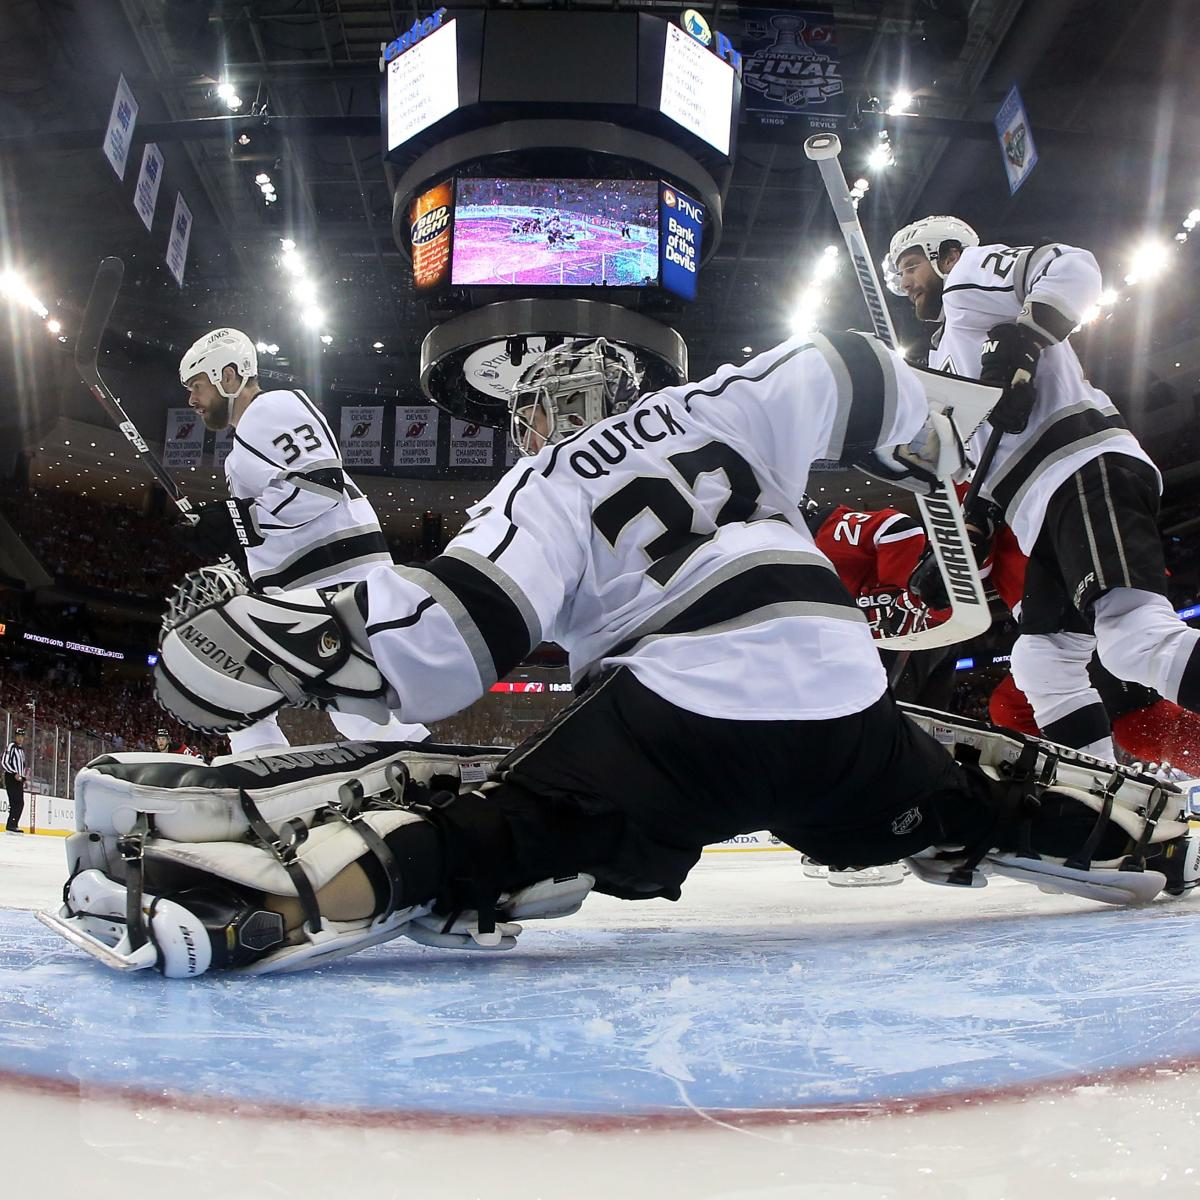 b3a4c17bbfc Stanley Cup Predictions 2012: Why LA Kings Will Sweep New Jersey Devils |  Bleacher Report | Latest News, Videos and Highlights